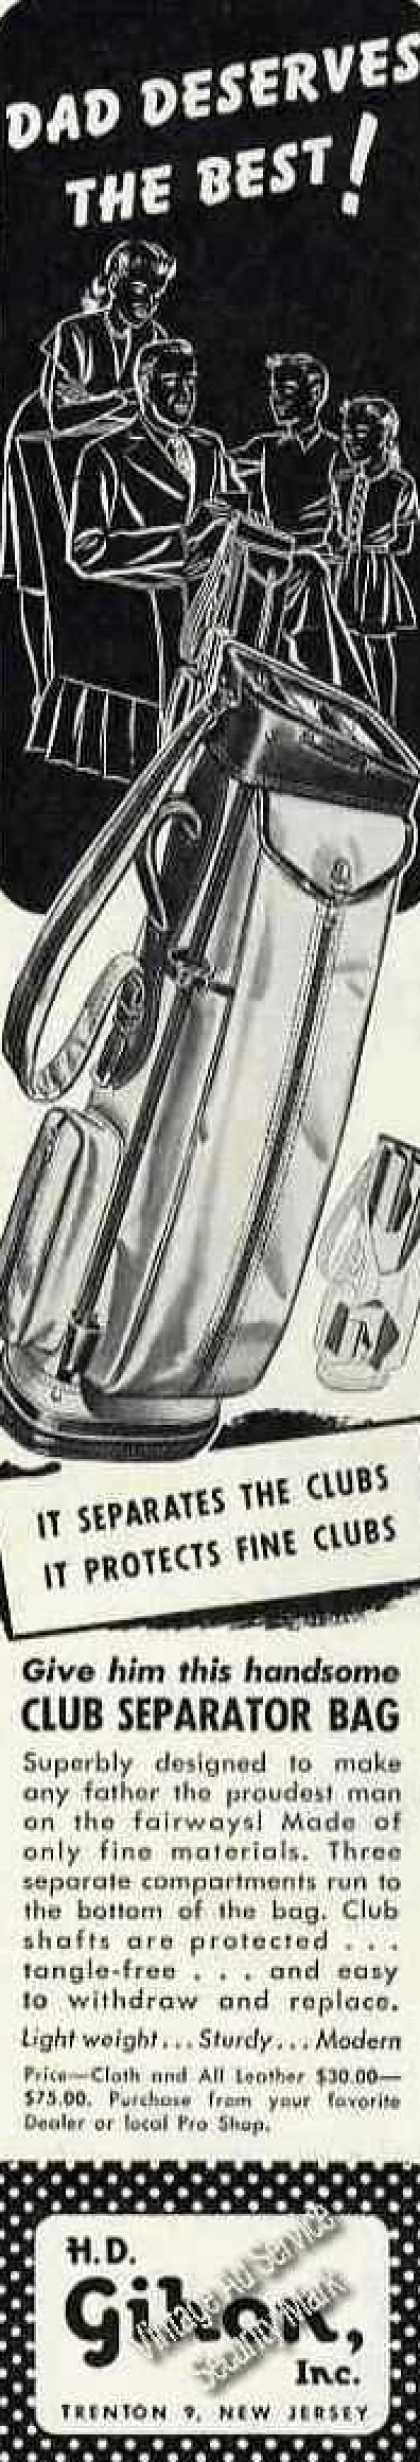 H D Gihon Club Separator Golf Bag Trenton Nj (1947)